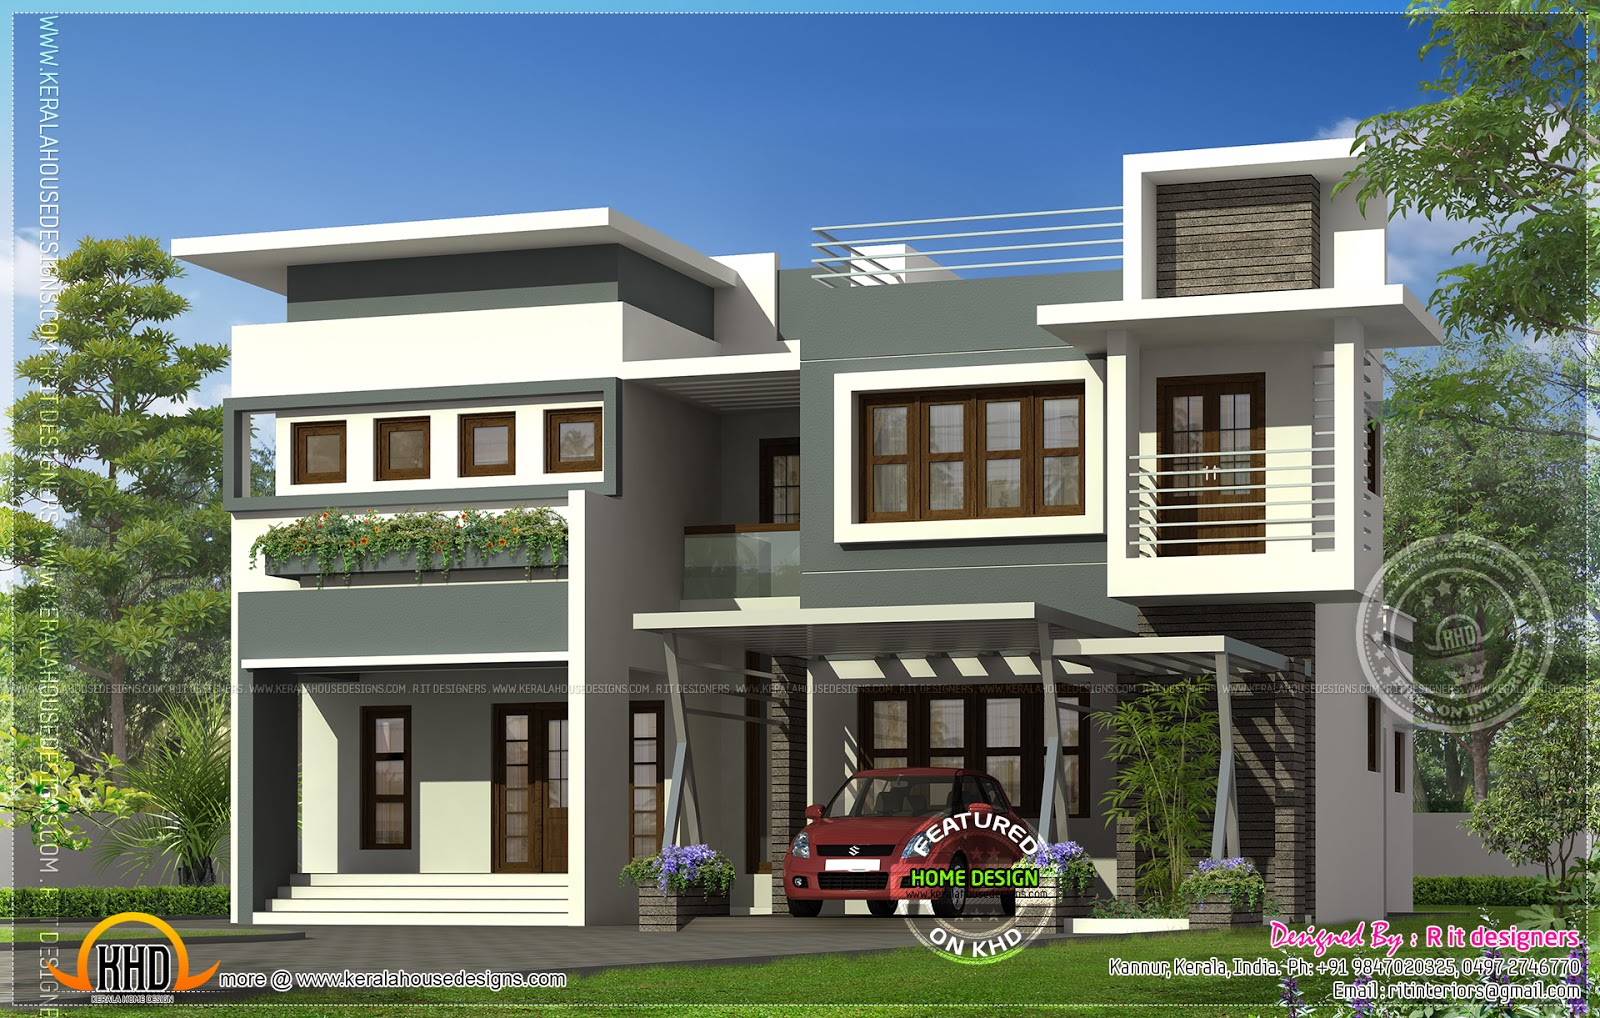 Modern contemporary residence design home kerala plans Modern design homes